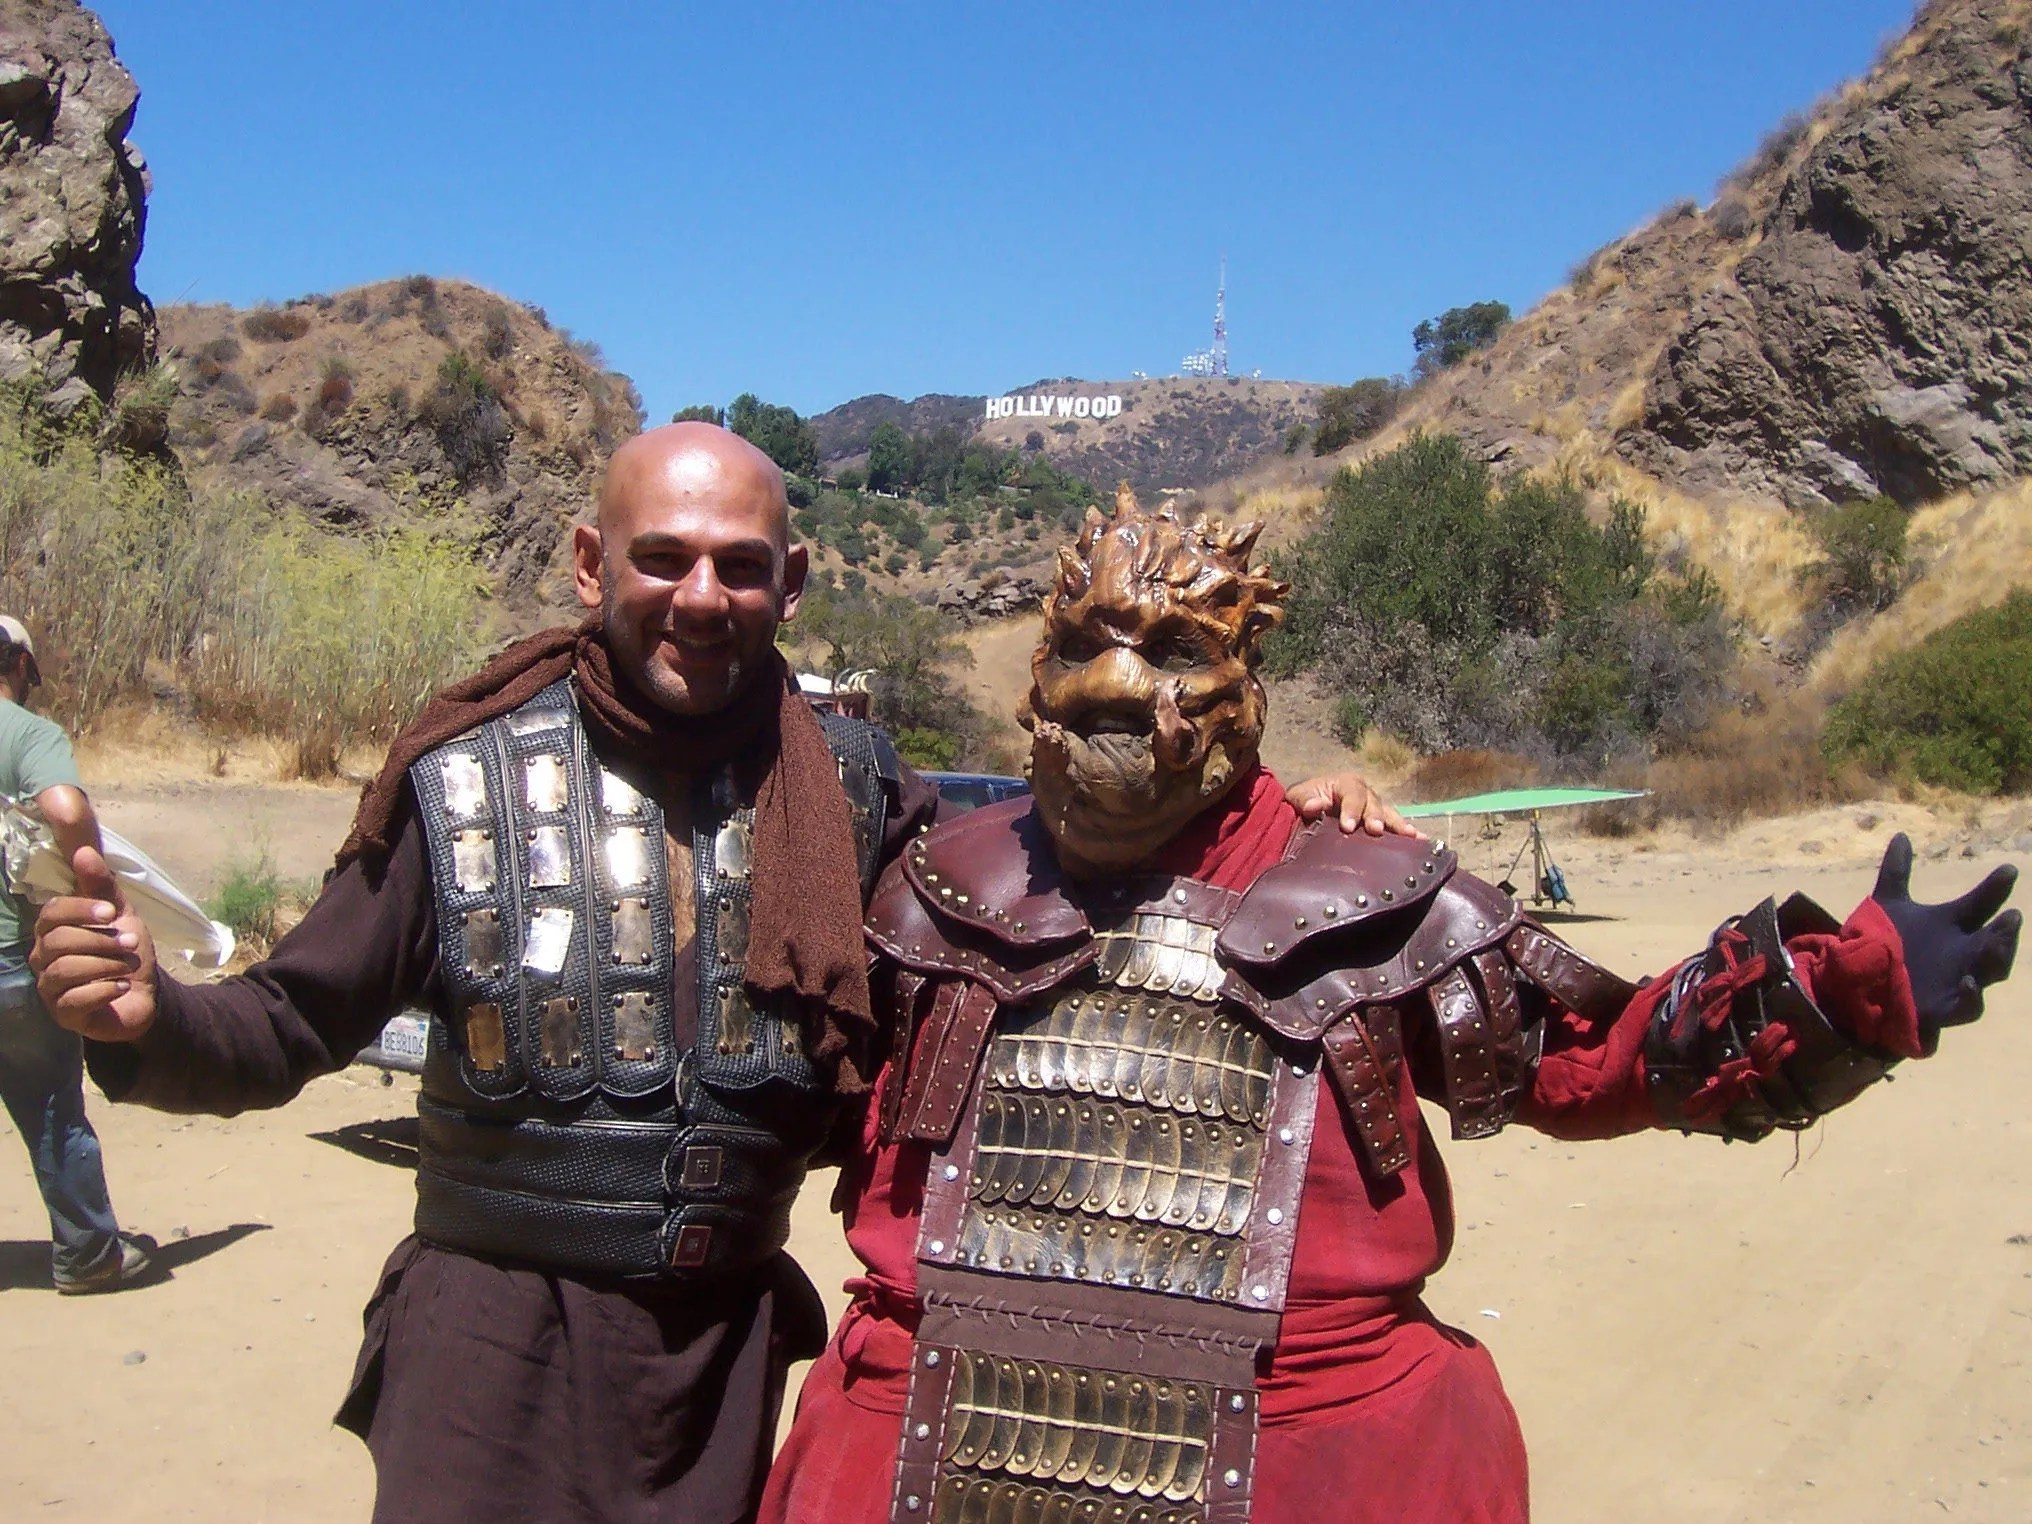 On location in Griffith Park Hollywood for Princess of Mars